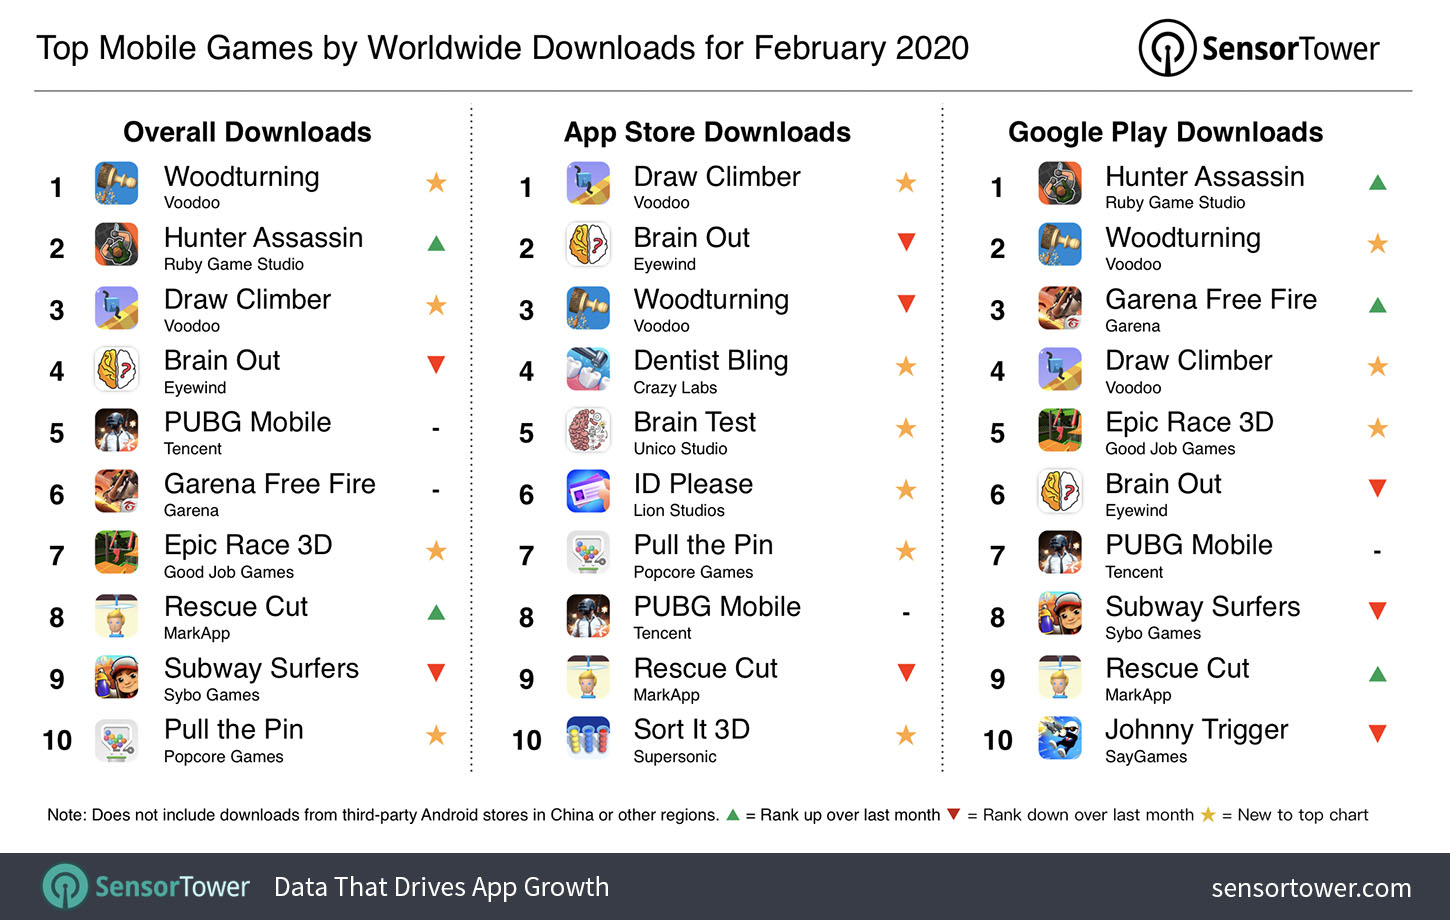 Top Mobile Games Worldwide for February 2020 by Downloads